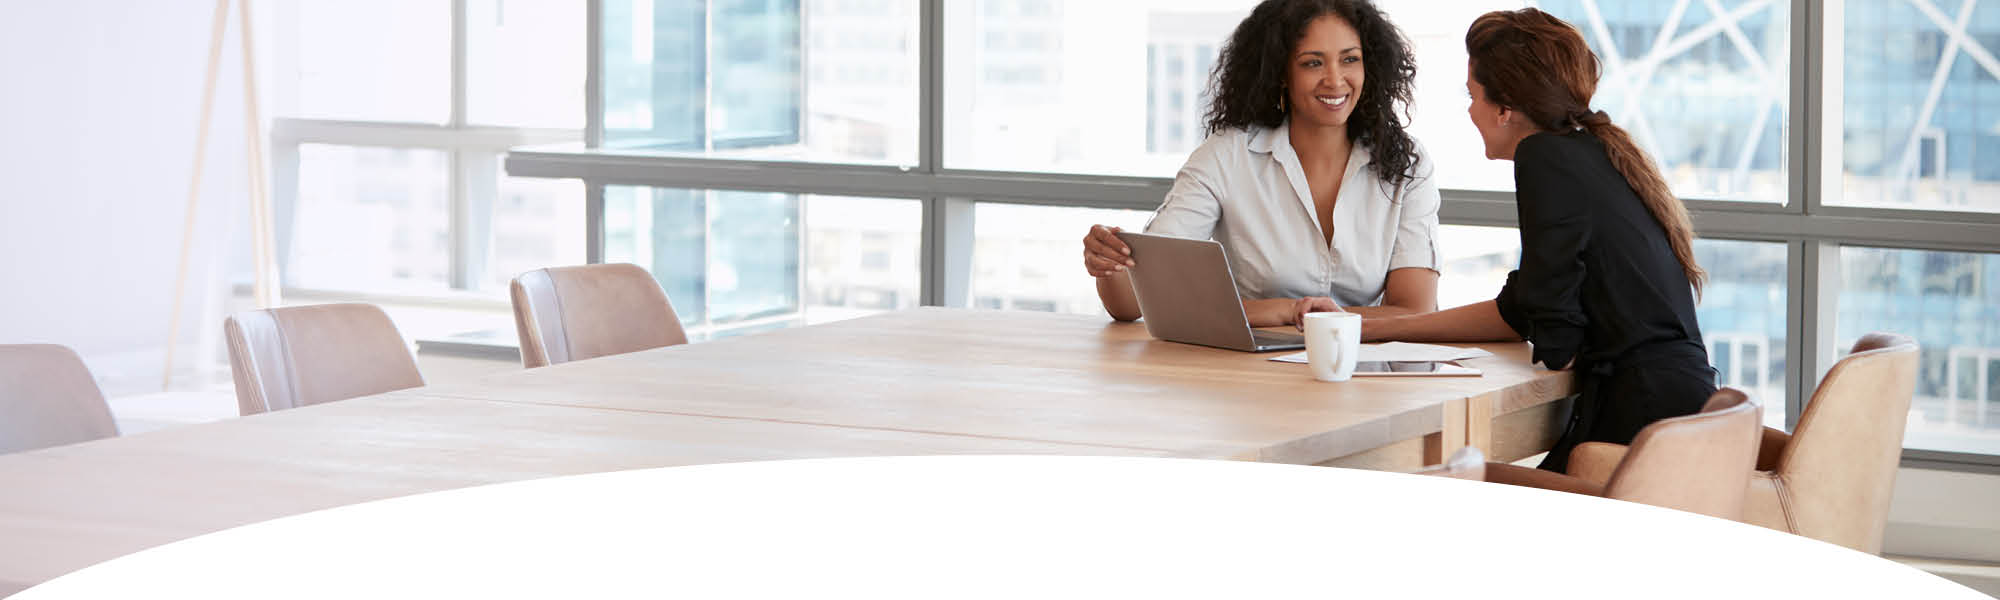 Get Help - two women sitting in front of a computer at a conference table